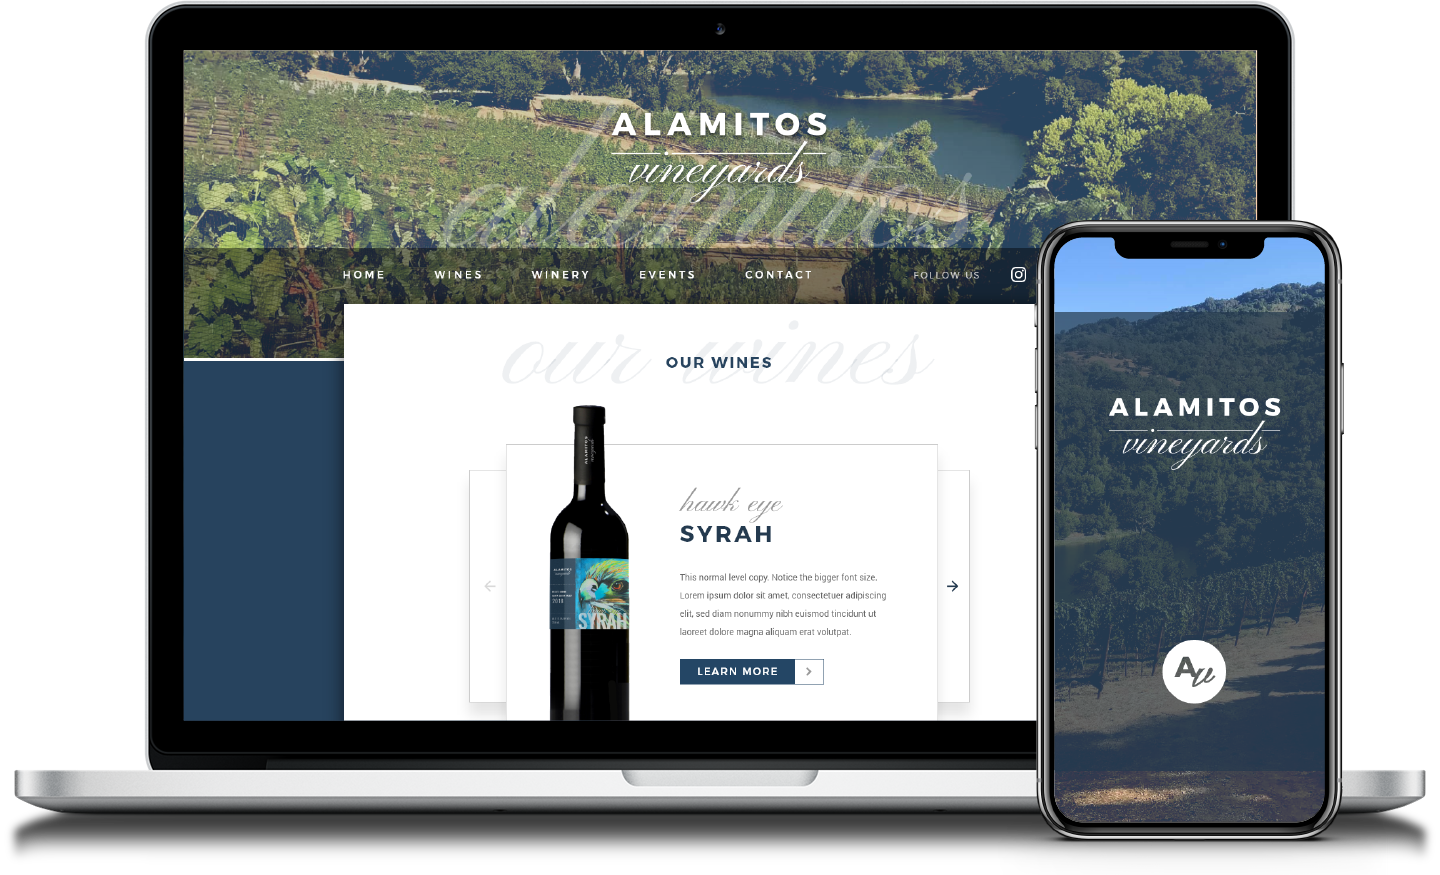 Alamitos Vineyards